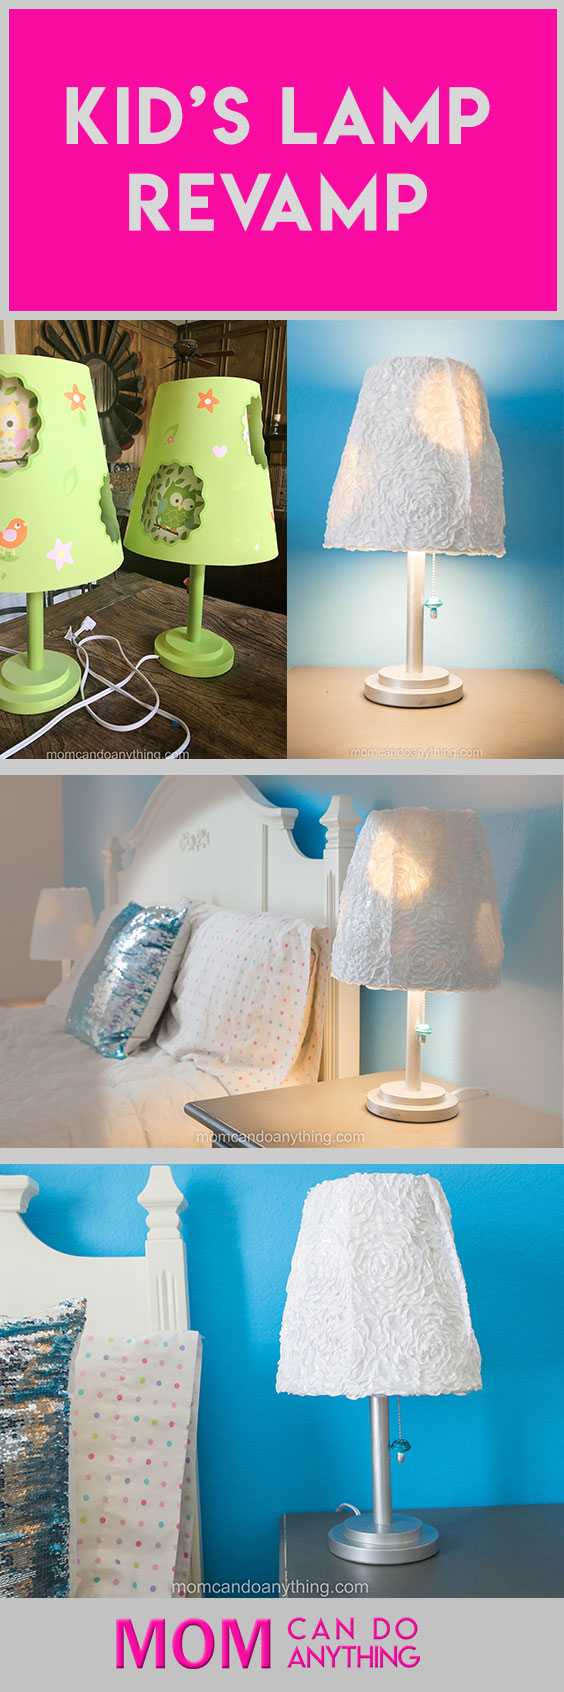 Kid's-Lamp-Revamp